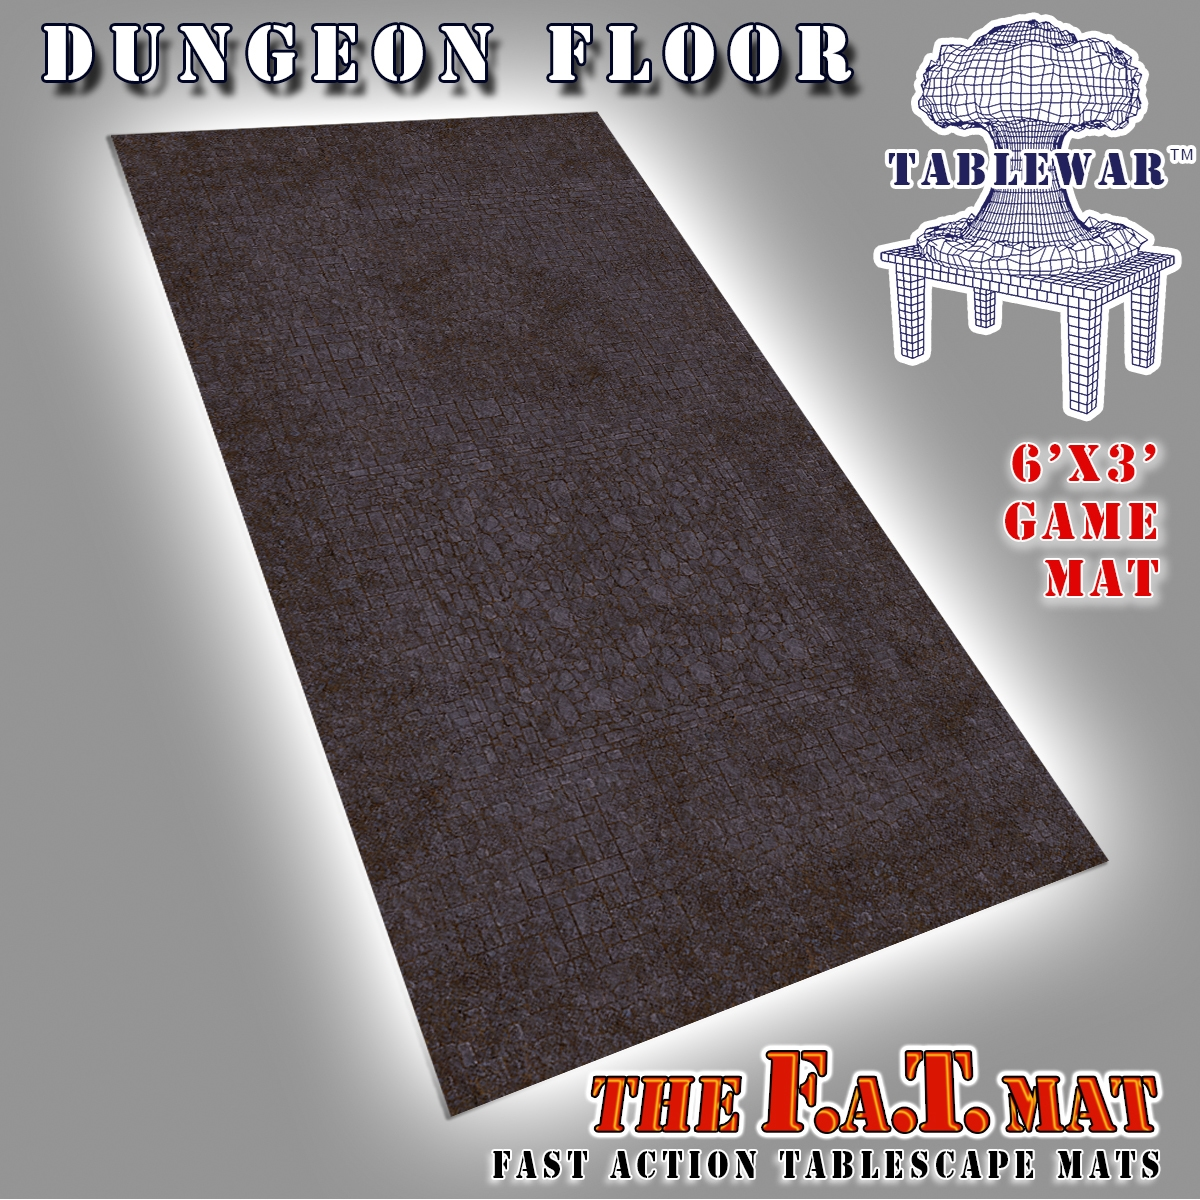 F.A.T. Mats: Dungeon Floor 6×3